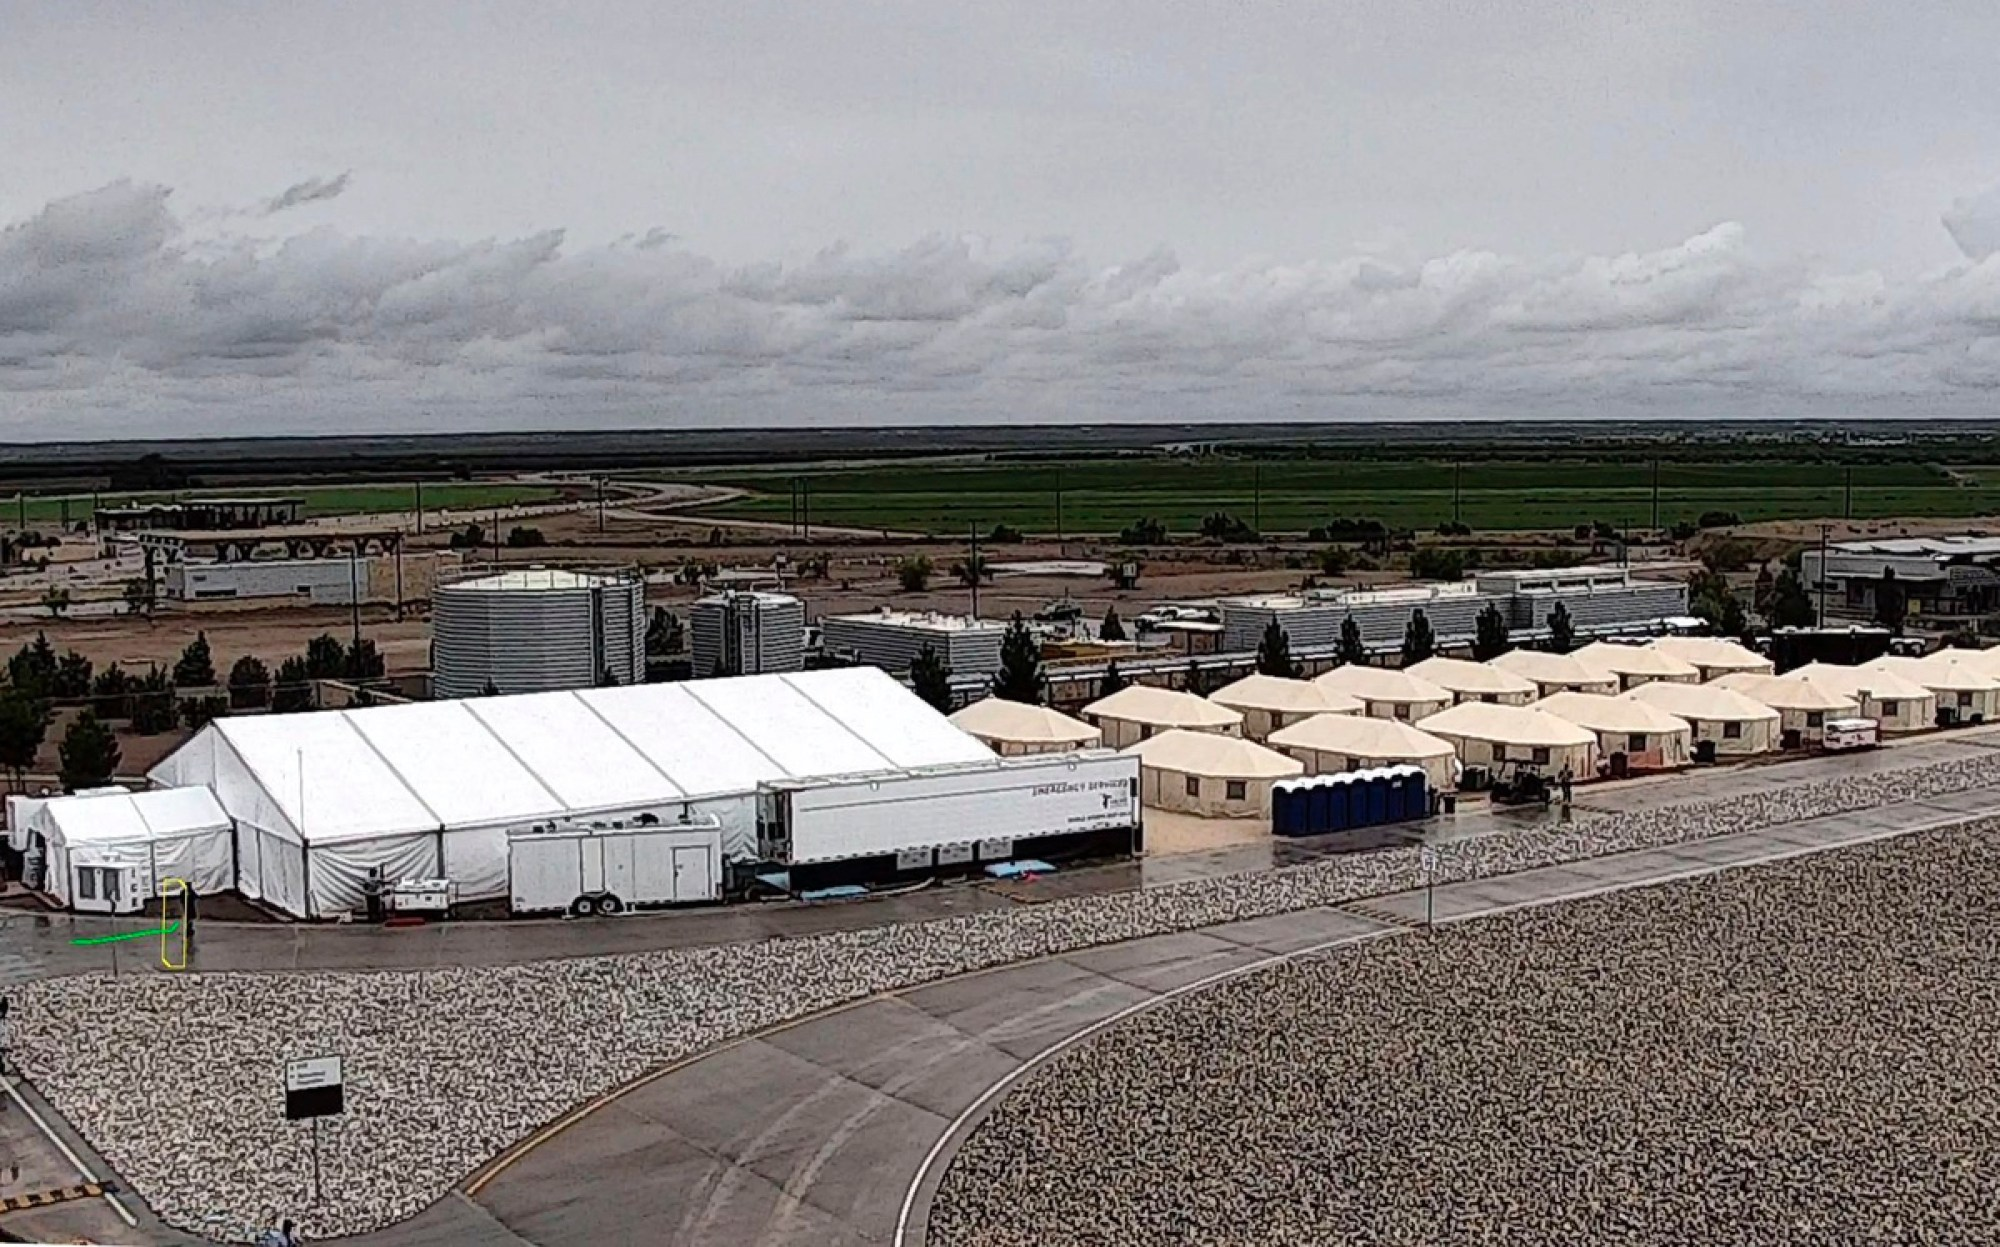 This undated file photo provided by HHS' Administration for Children and Families shows the shelter used to house unaccompanied foreign children in Tornillo, Texas. A spokesman for the U.S. Department of Health and Human Services said Tuesday, Sept. 11, 2018, that the facility will be expanded to 3,800 beds from its initial capacity of 360 beds. (HHS' Administration for Children and Families via AP, File)